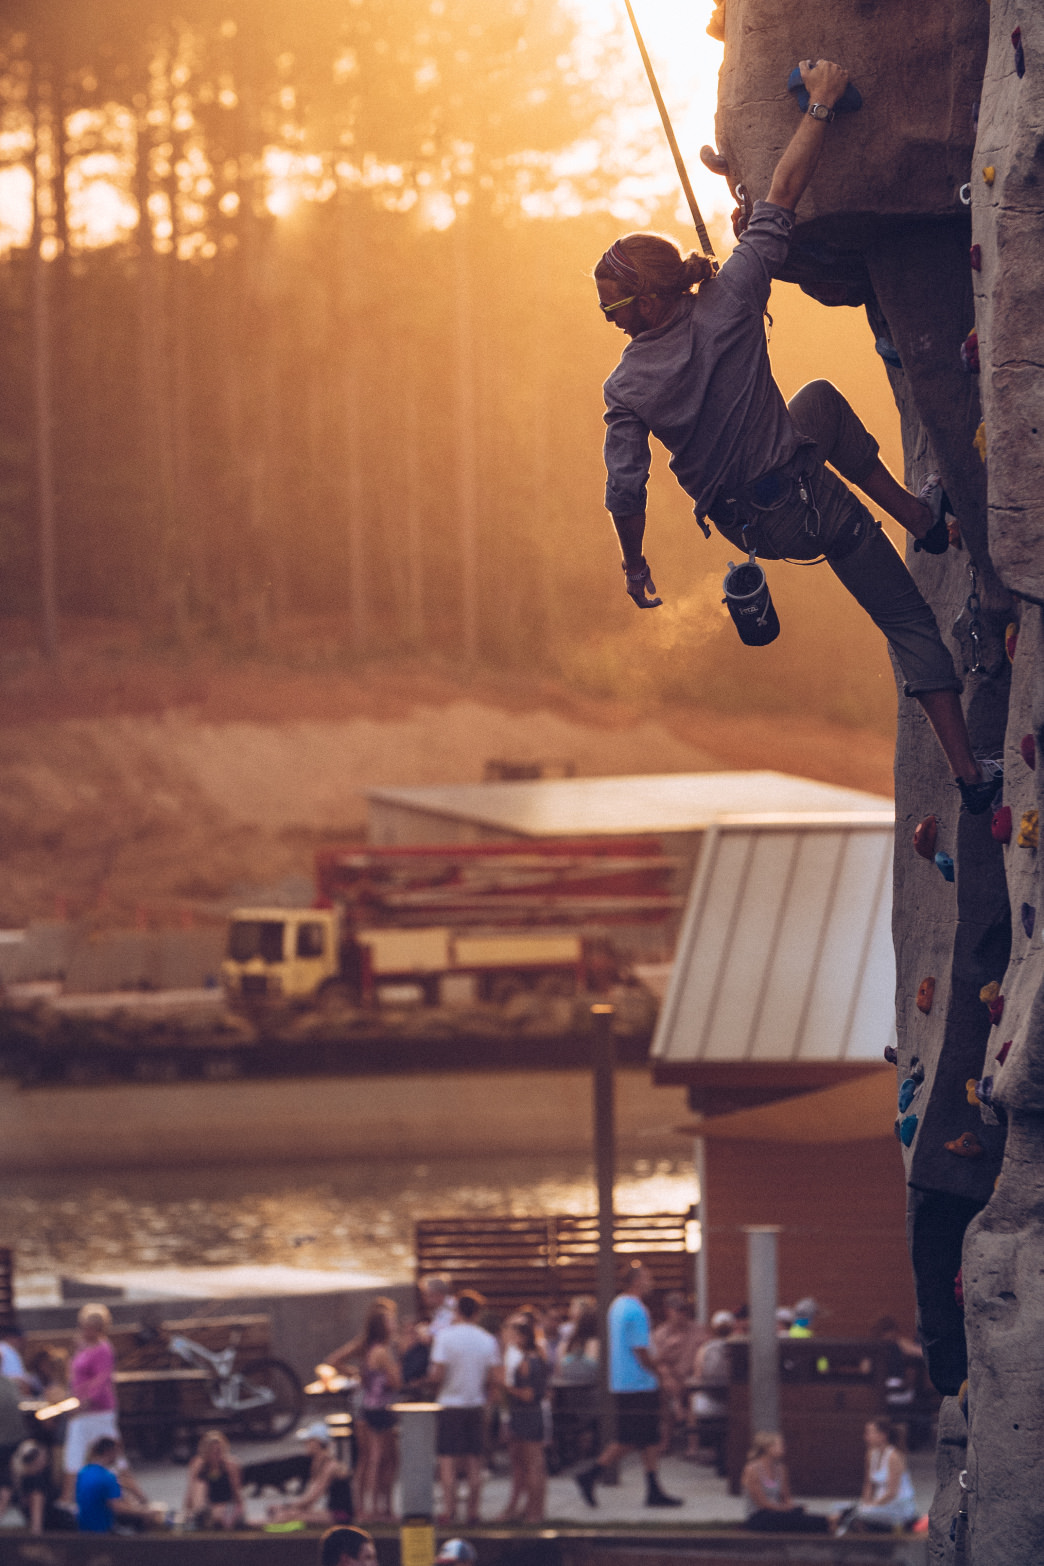 Rock climbing at golden hour at the U.S. National Whitewater Center.